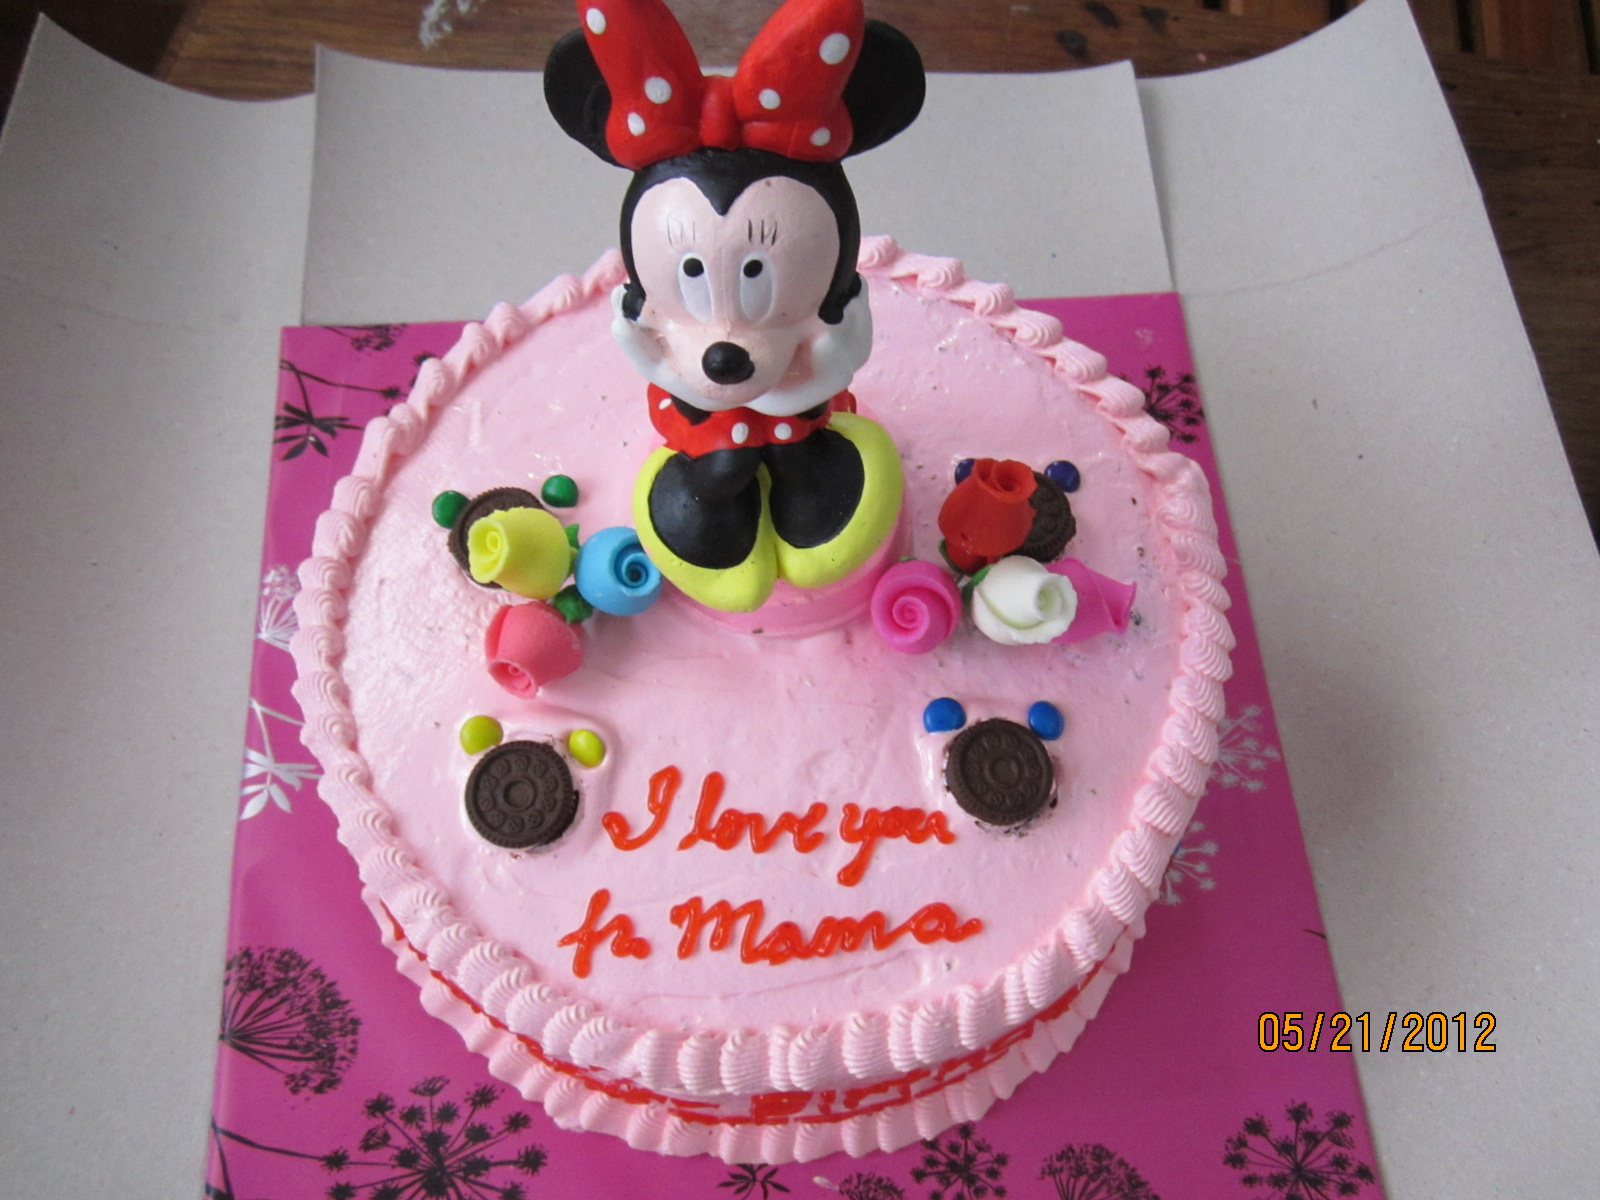 Birthday Cake Ki Images : JnyJ Cakes and Goodies - Wedding Cake and Dessert Supplier in